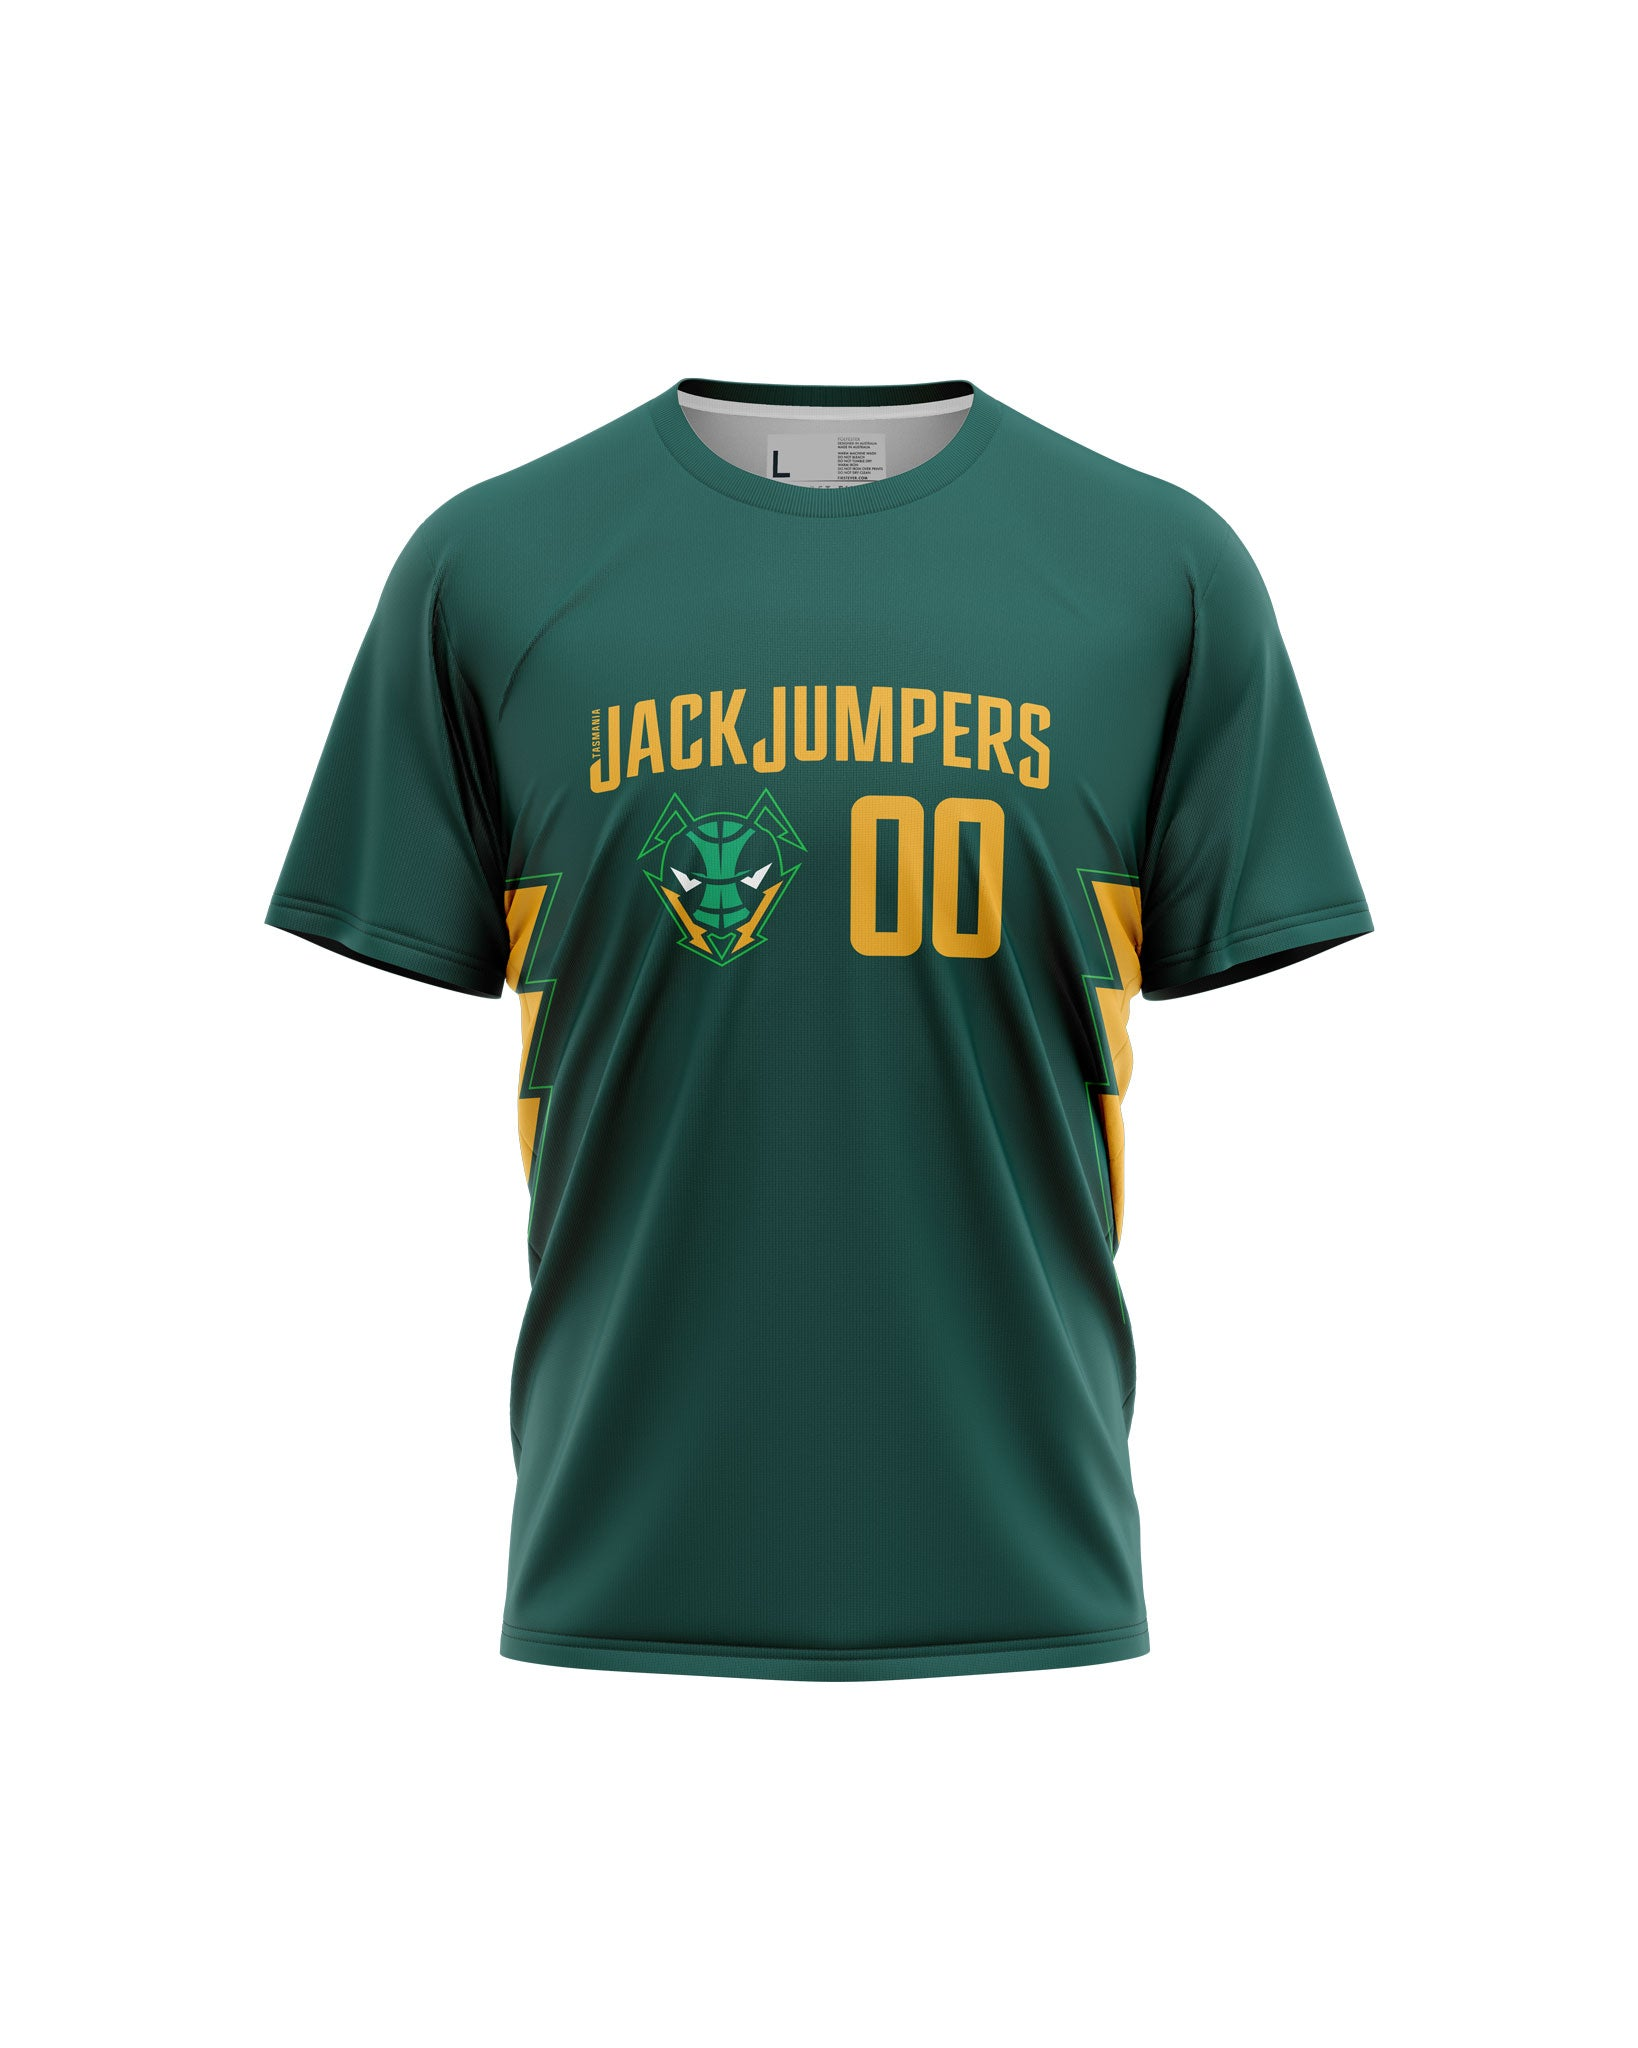 Tasmania JackJumpers Wordmark Tee - Personalised